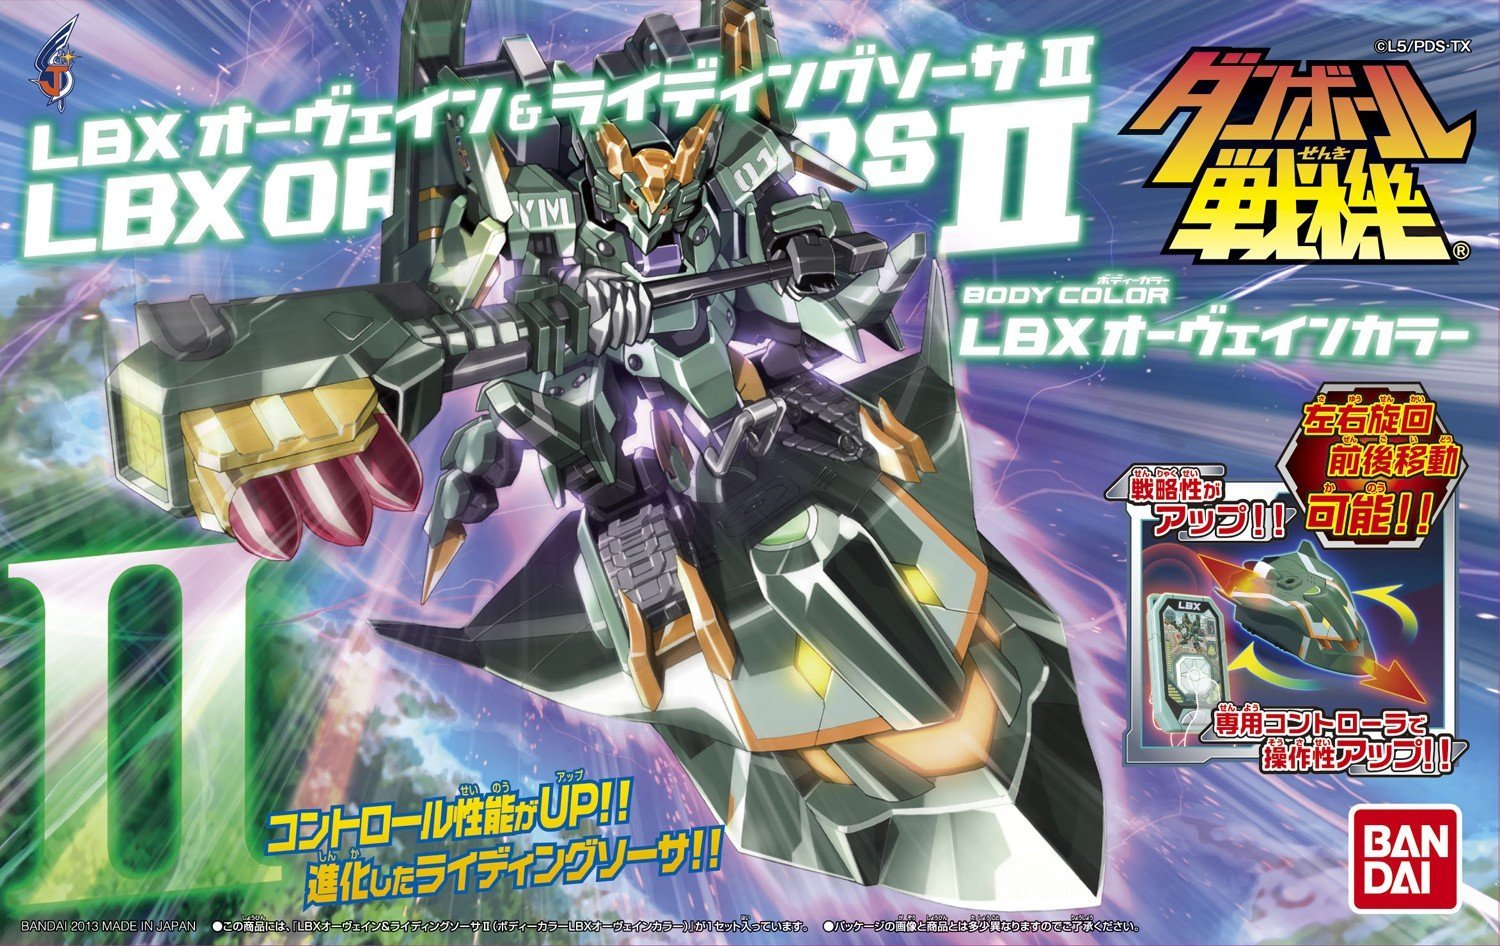 LBX Orvane & RS (Riding Sousa II)